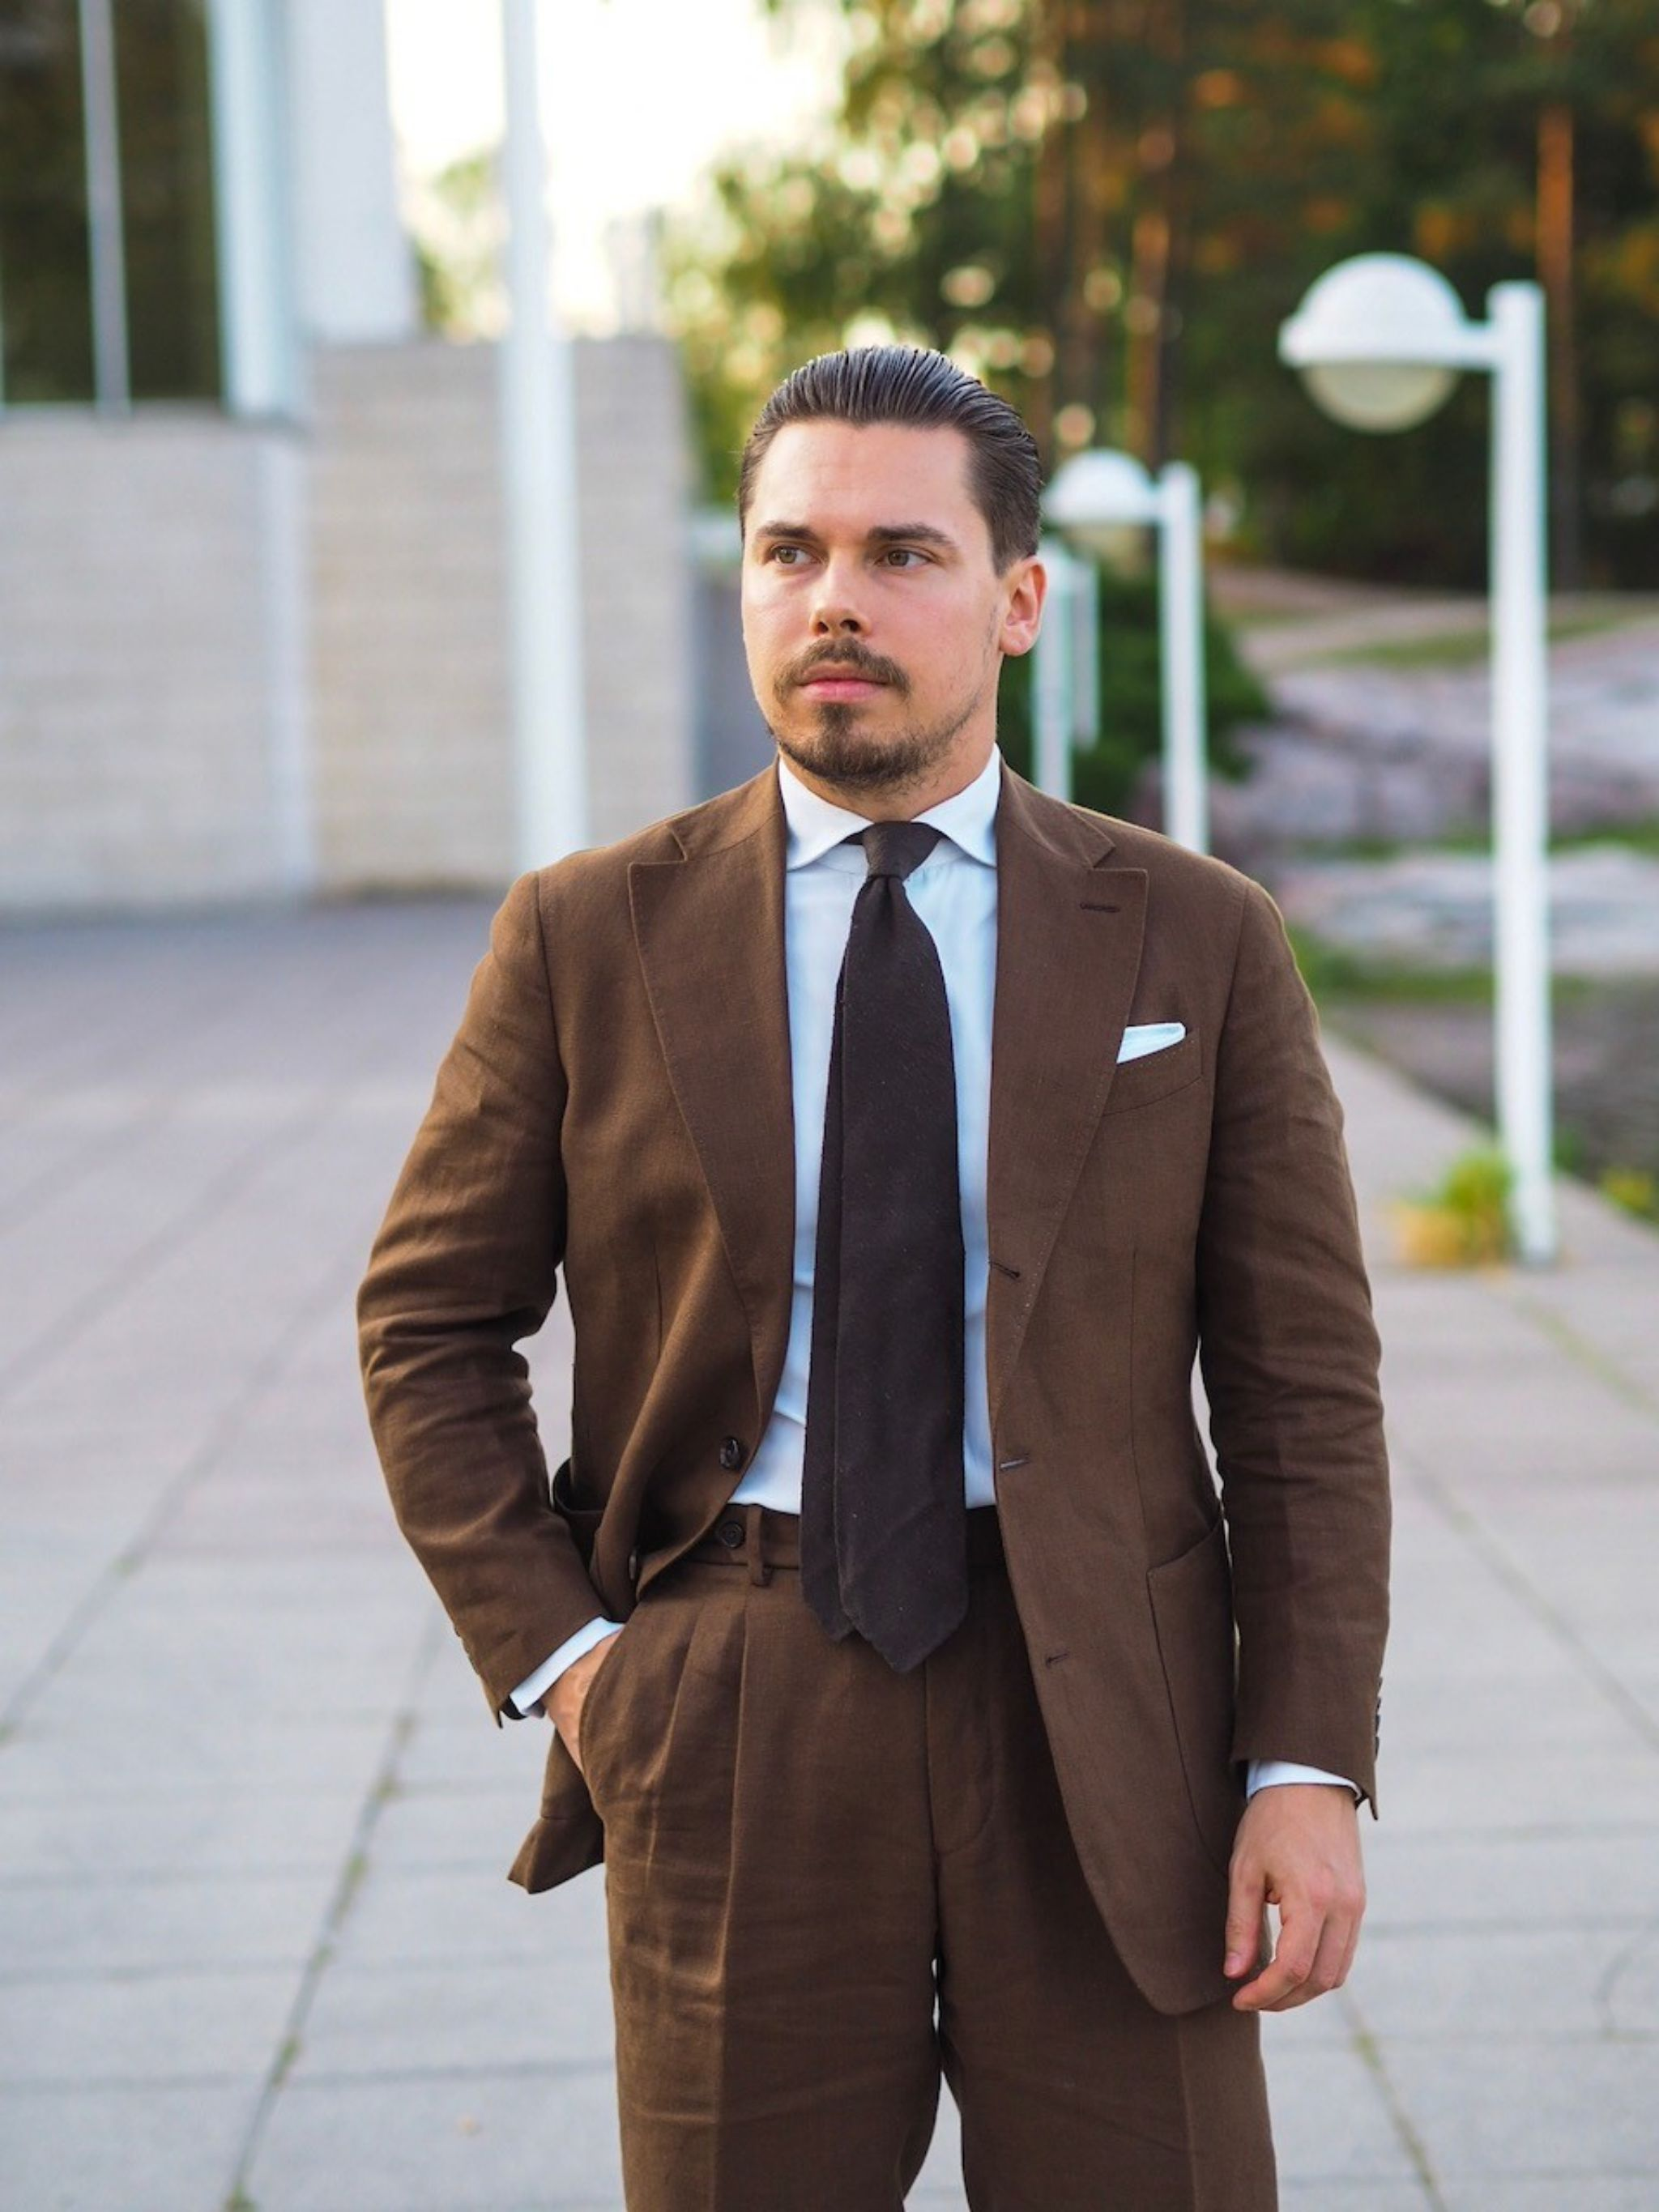 The Brown linen suit - suitable for summer weddings